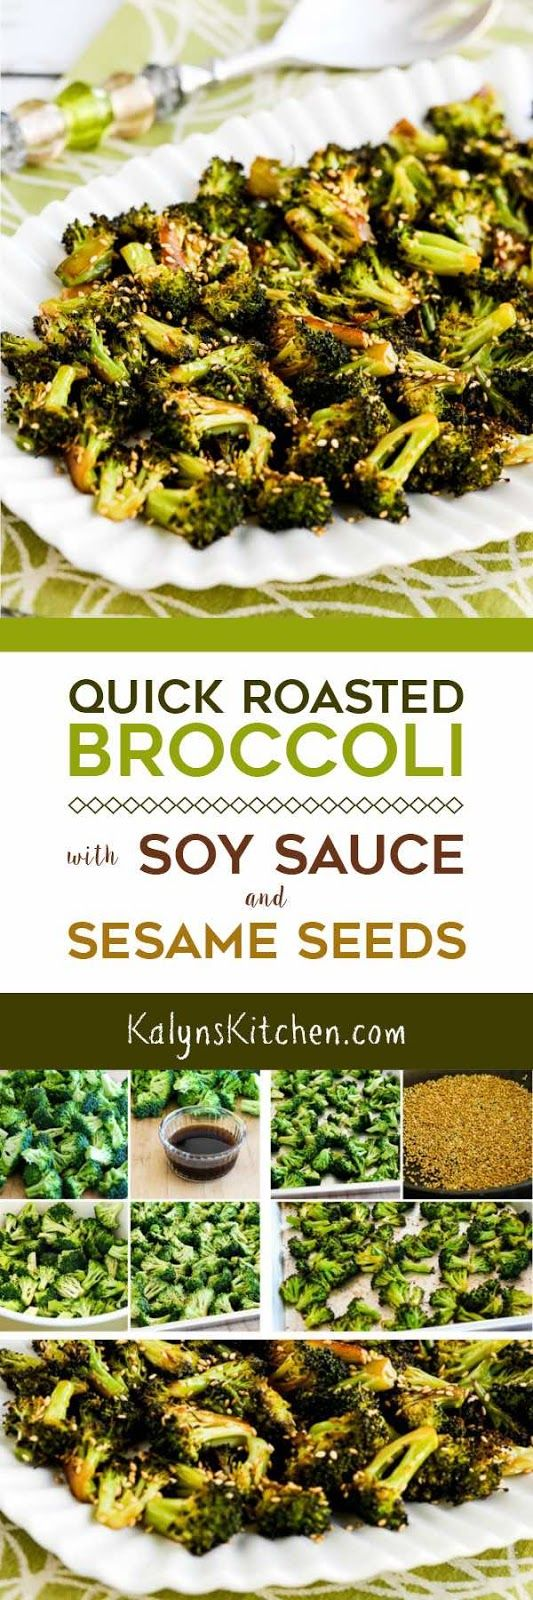 Unless you're a confirmed broccoli avoider, you MUST TRY this Quick Roasted Broccoli with Soy Sauce and Sesame Seeds; this recipe is amazing. And it's low-carb, dairy-free, gluten-free, vegan, and South Beach Diet friendly and if you sub the soy sauce for coconut aminos it can easily be Paleo or Whole 30, so you can make this for anyone. [found on KalynsKitchen.com] #BroccoliRecipe #LowCarb #GlutenFree #Keto #SouthBeachDiet #Vegan